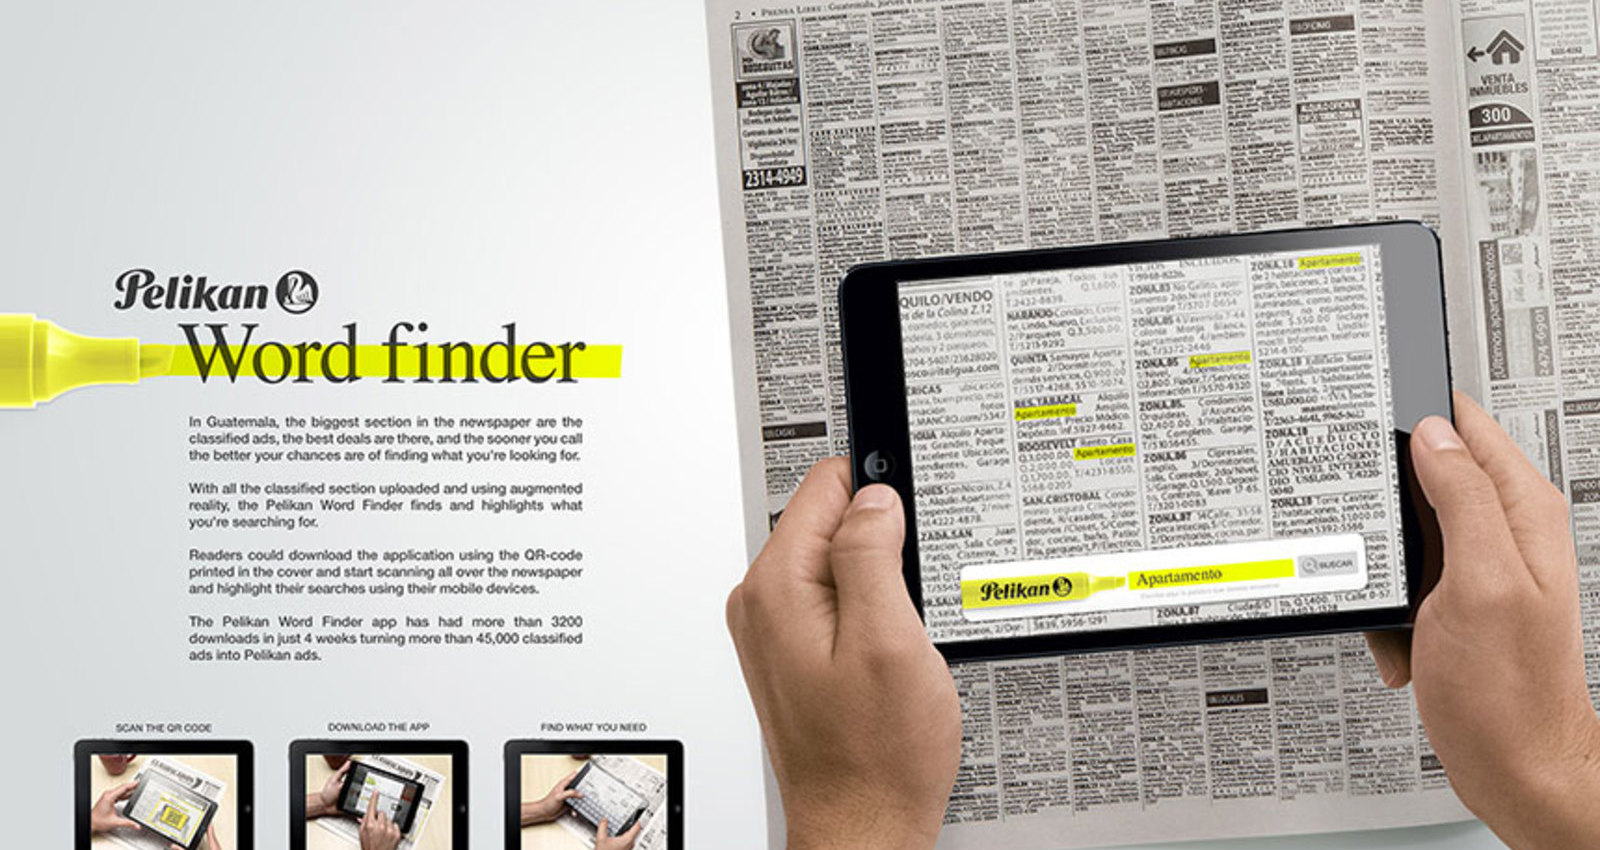 Pelikan Word Finder